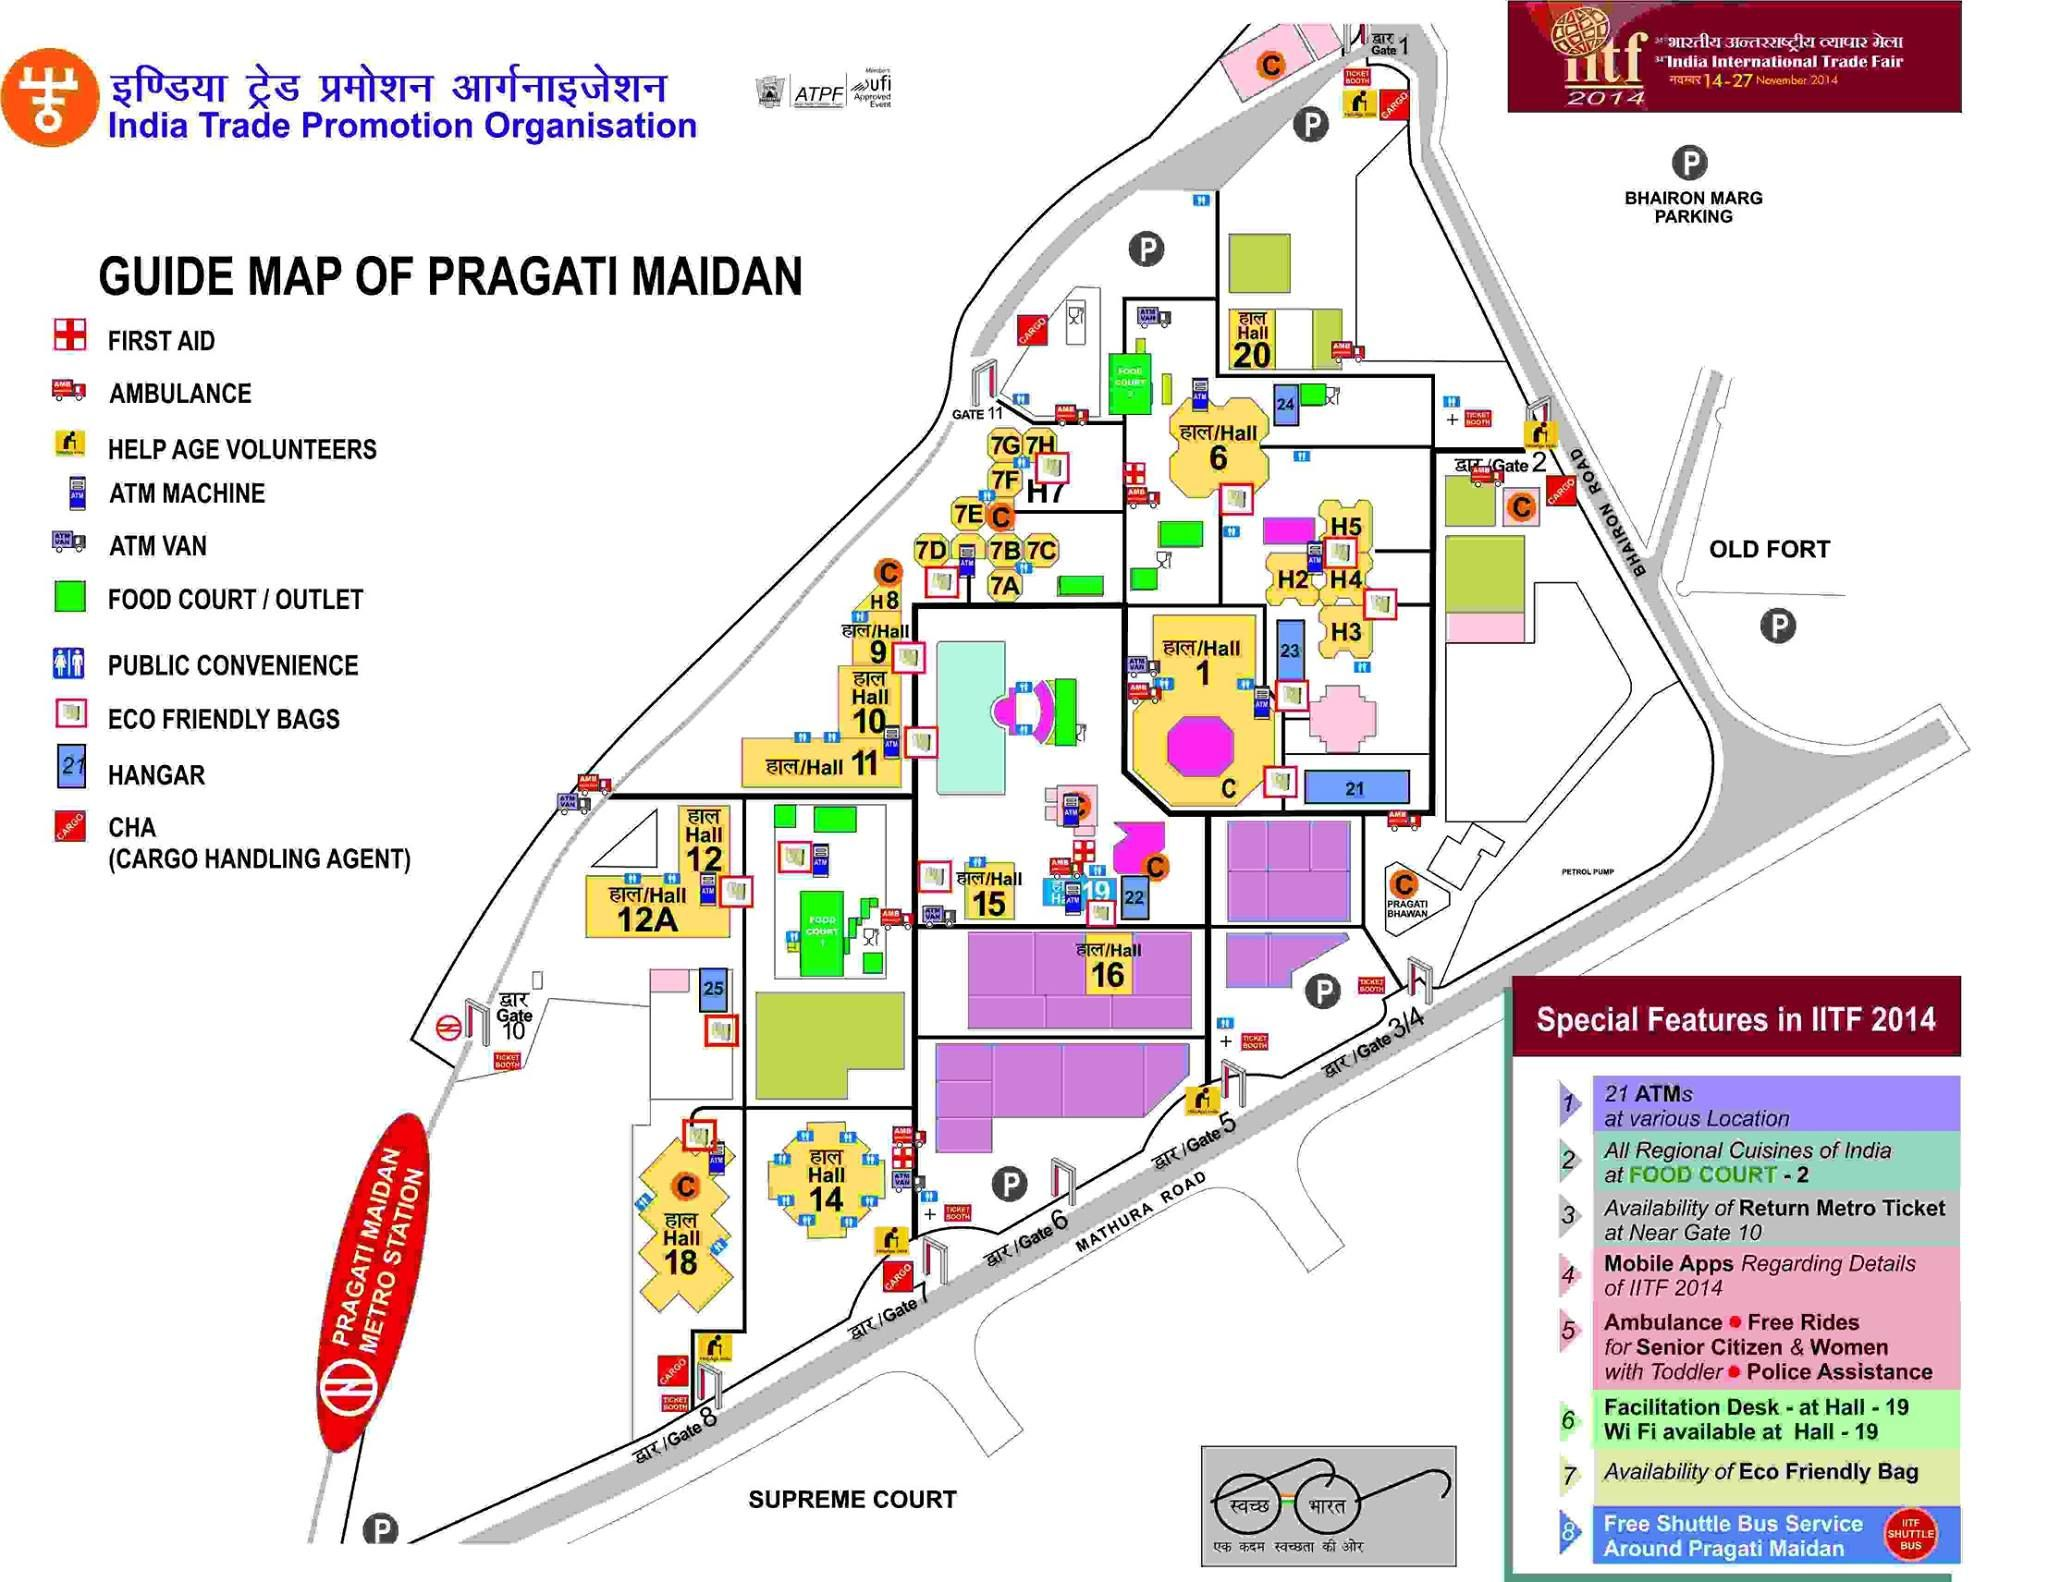 Layout of trade fair at pragati maidan it s a beautiful place to see all world